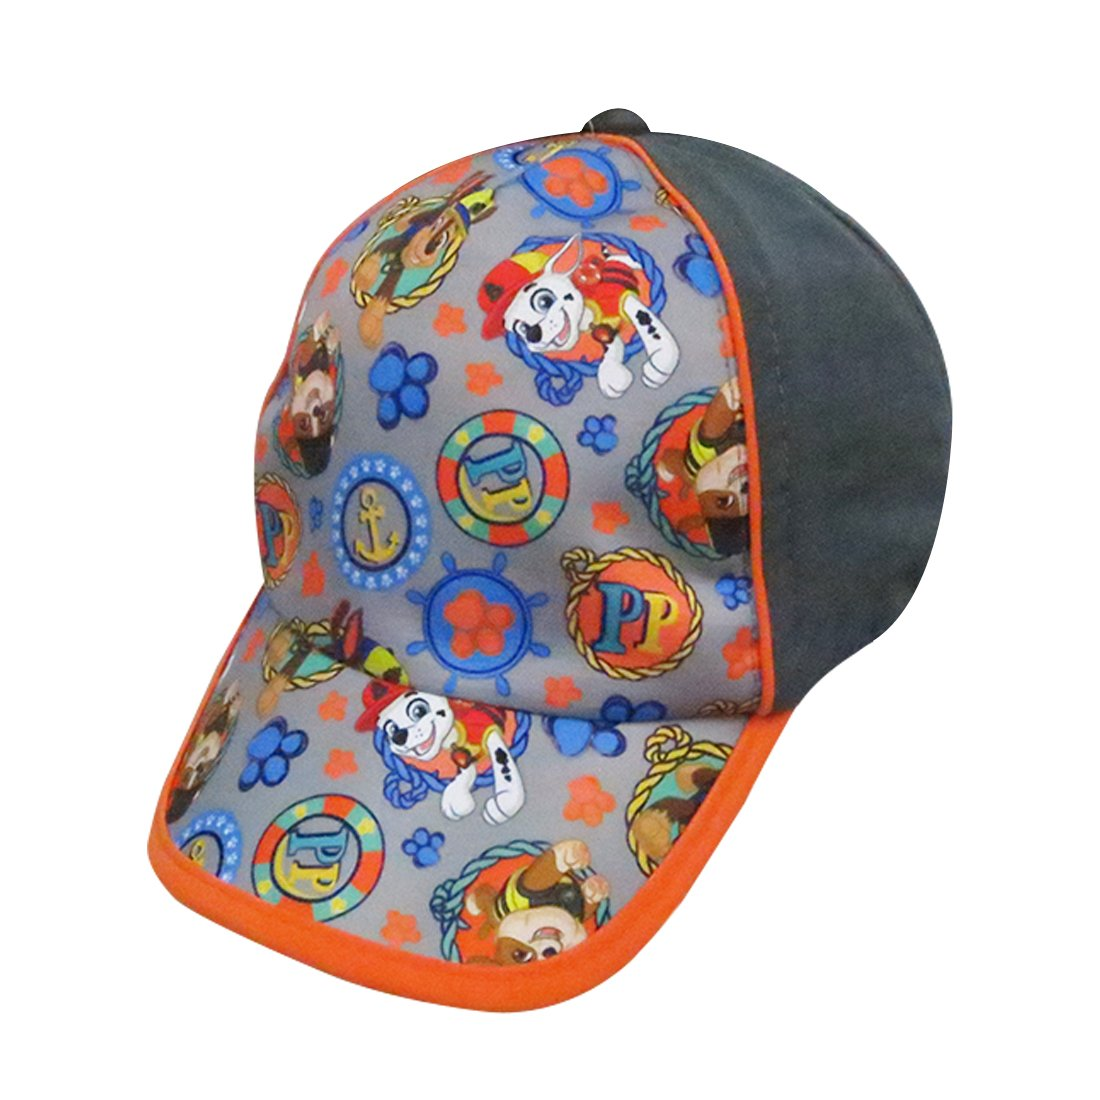 Paw Patrol Boys Baseball Cap with Marshall and Chase Characters - 100% Cotton